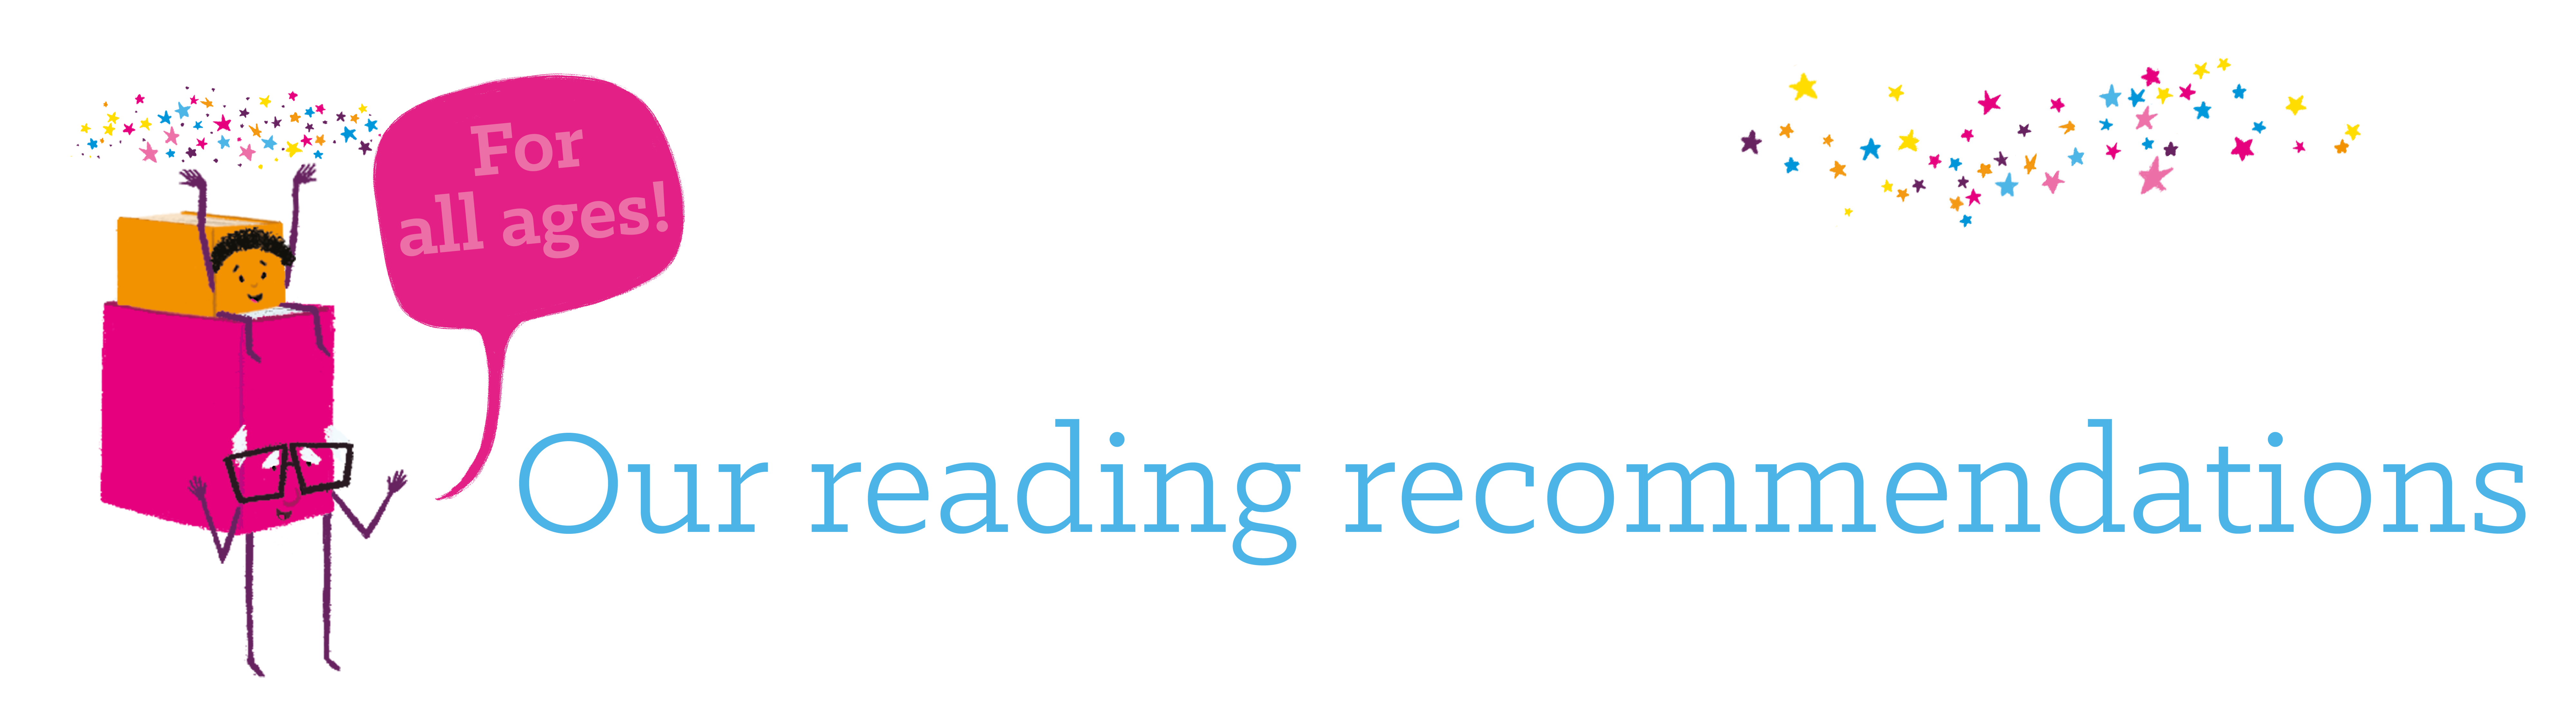 Reading Recommendations